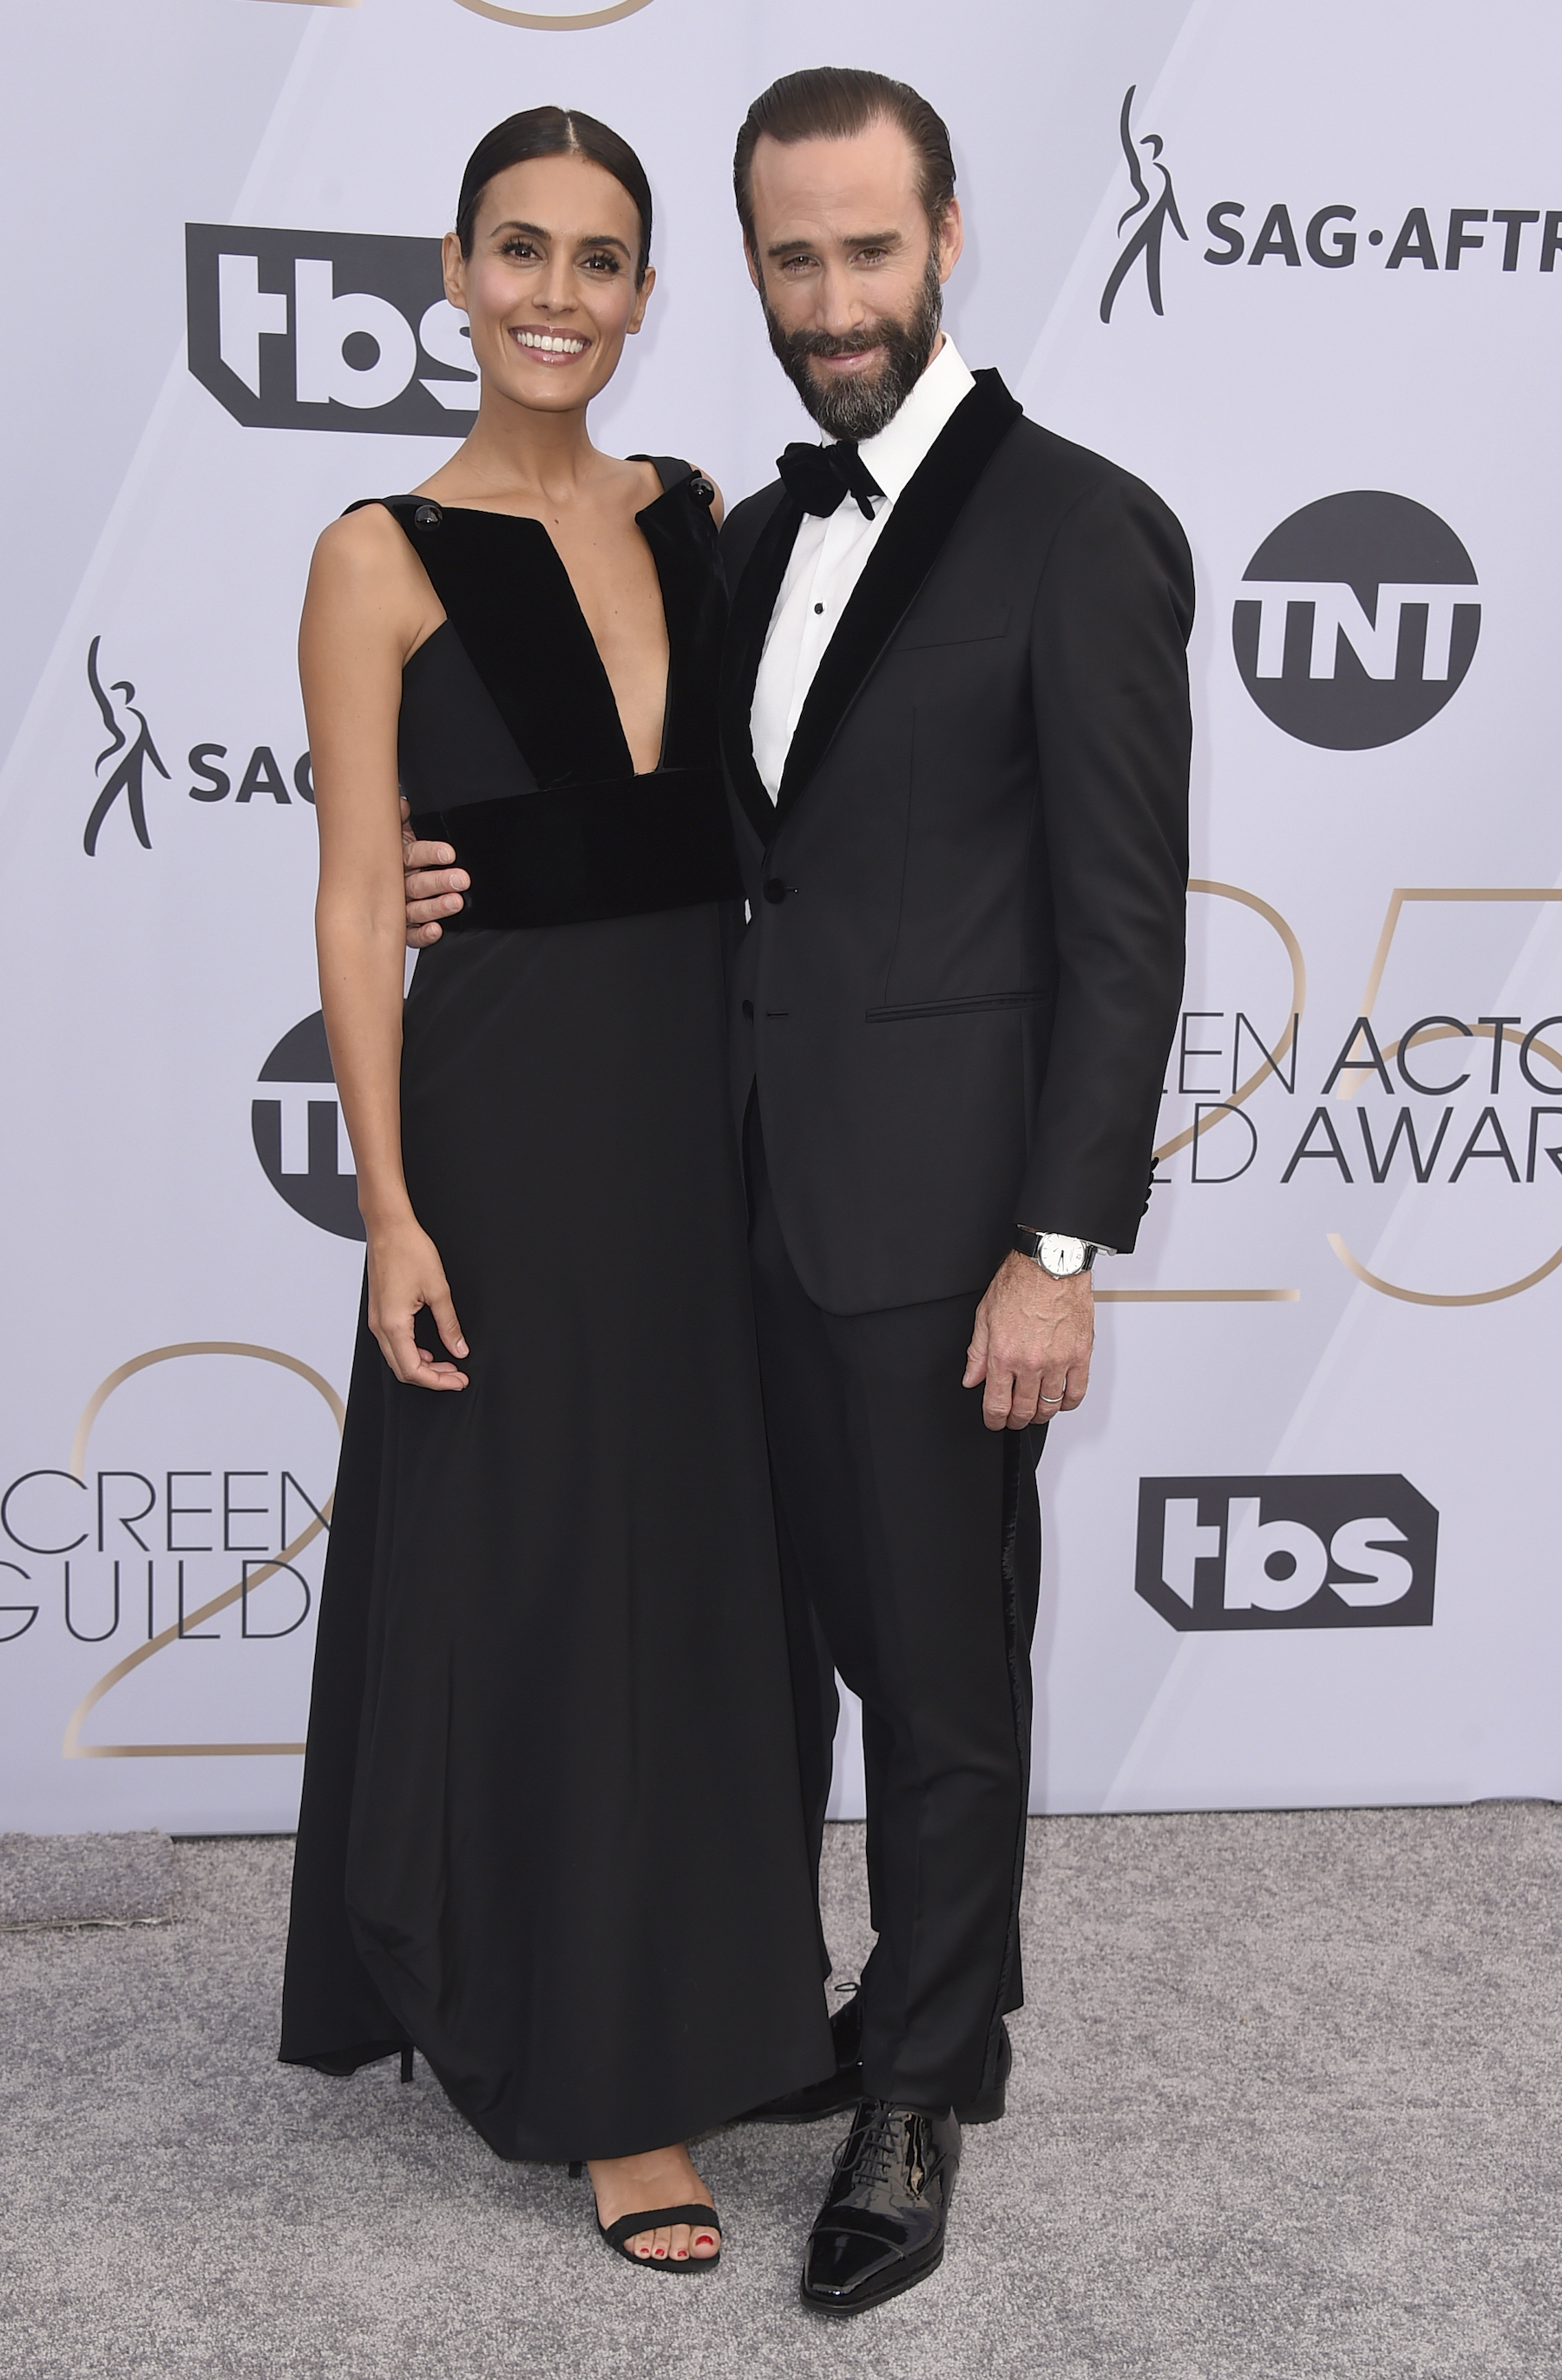 "<div class=""meta image-caption""><div class=""origin-logo origin-image ap""><span>AP</span></div><span class=""caption-text"">Maria Dolores Dieguez, left, and Joseph Fiennes arrive at the 25th annual Screen Actors Guild Awards at the Shrine Auditorium & Expo Hall on Sunday, Jan. 27, 2019, in Los Angeles. (Jordan Strauss/Invision/AP)</span></div>"